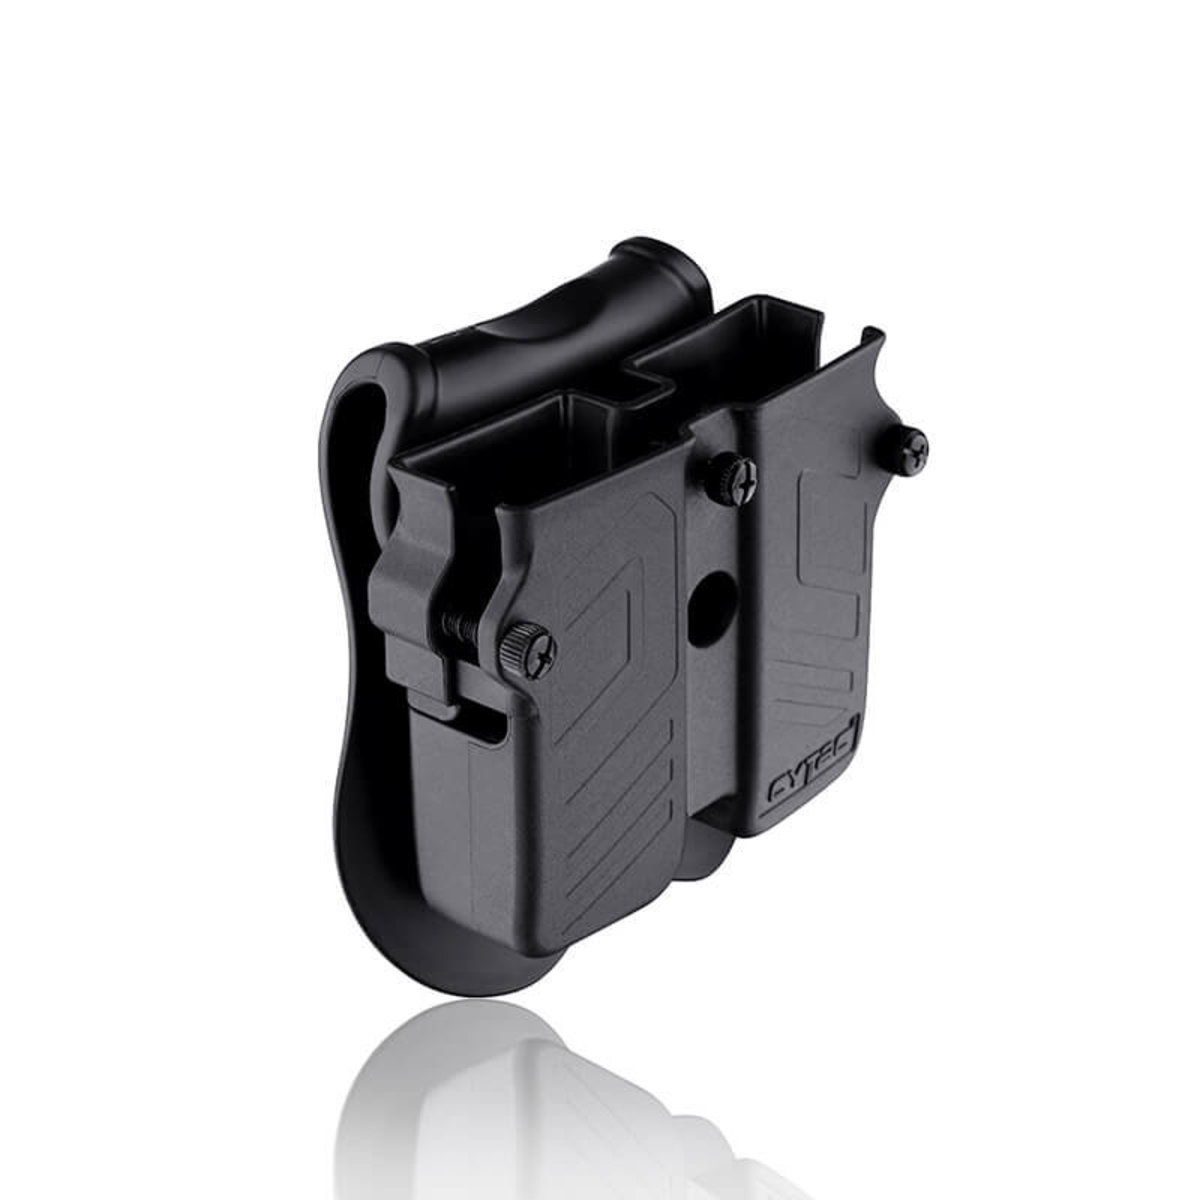 View larger image of Cytac Universal Double Magazine Pouch - Fits Single / Double Stack Magazines